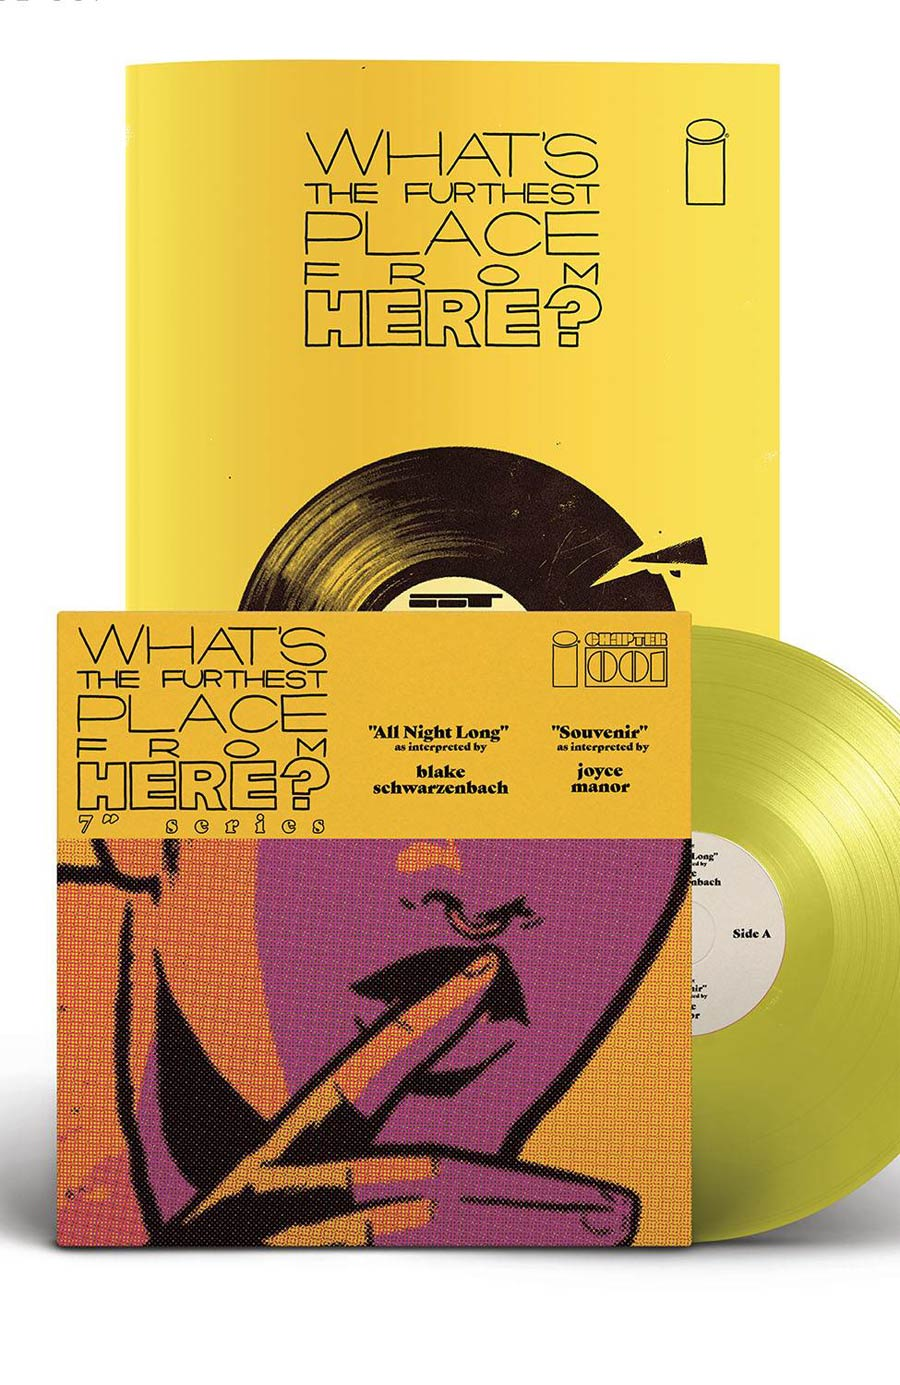 Whats The Furthest Place From Here Deluxe Edition #1 With 7-Inch Record Cover A